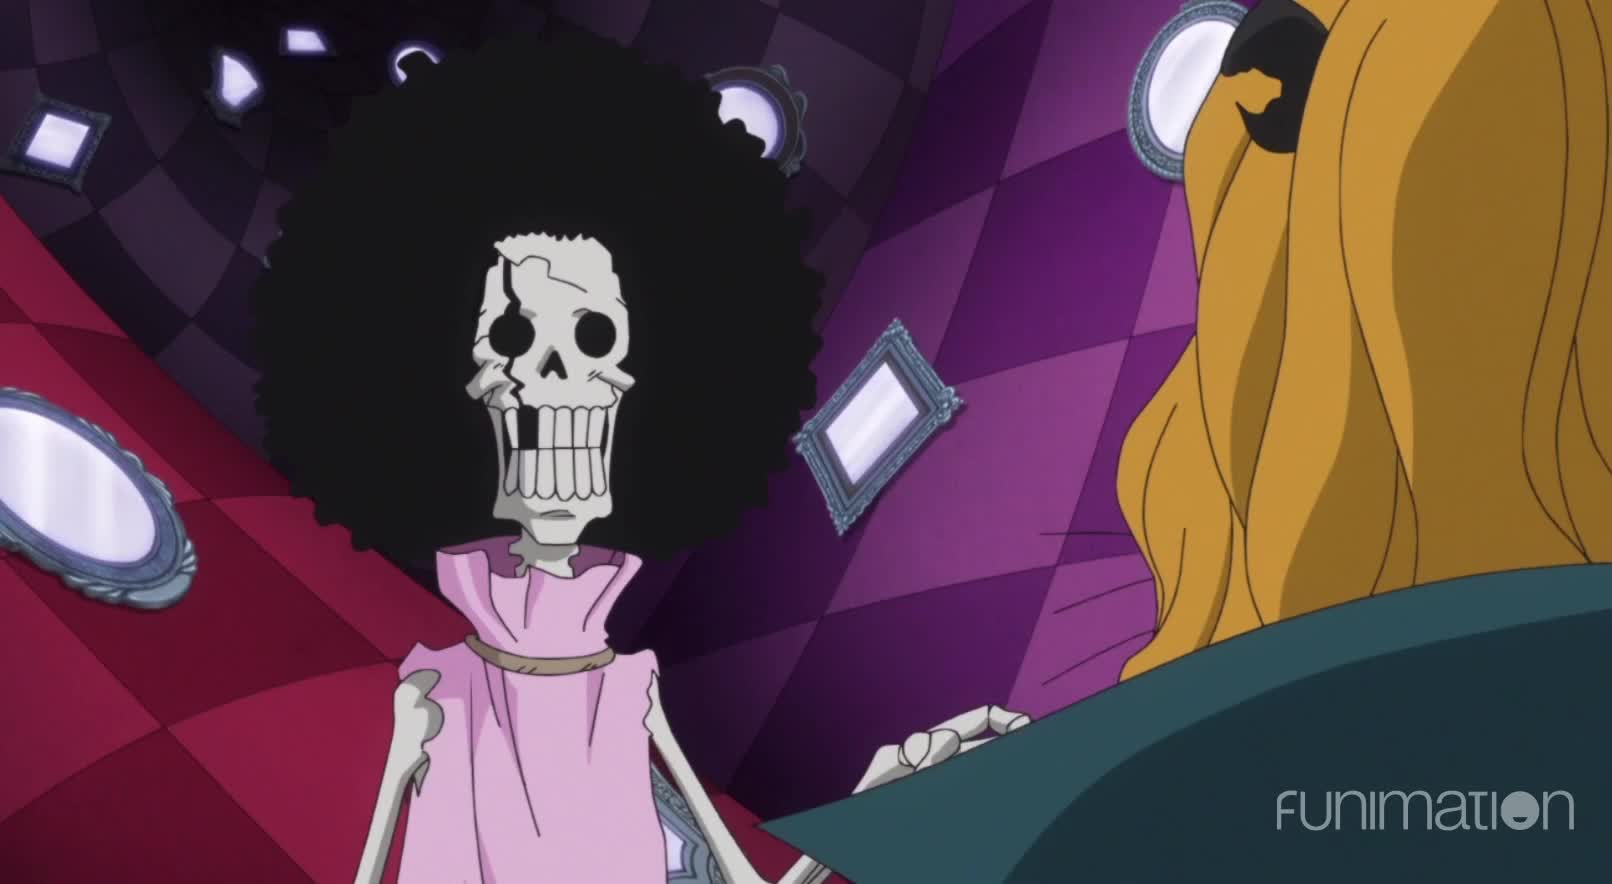 One Piece, One Piece episode 824, OnePiece, anime, ep824, funimation, funny, Good job Brook GIFs